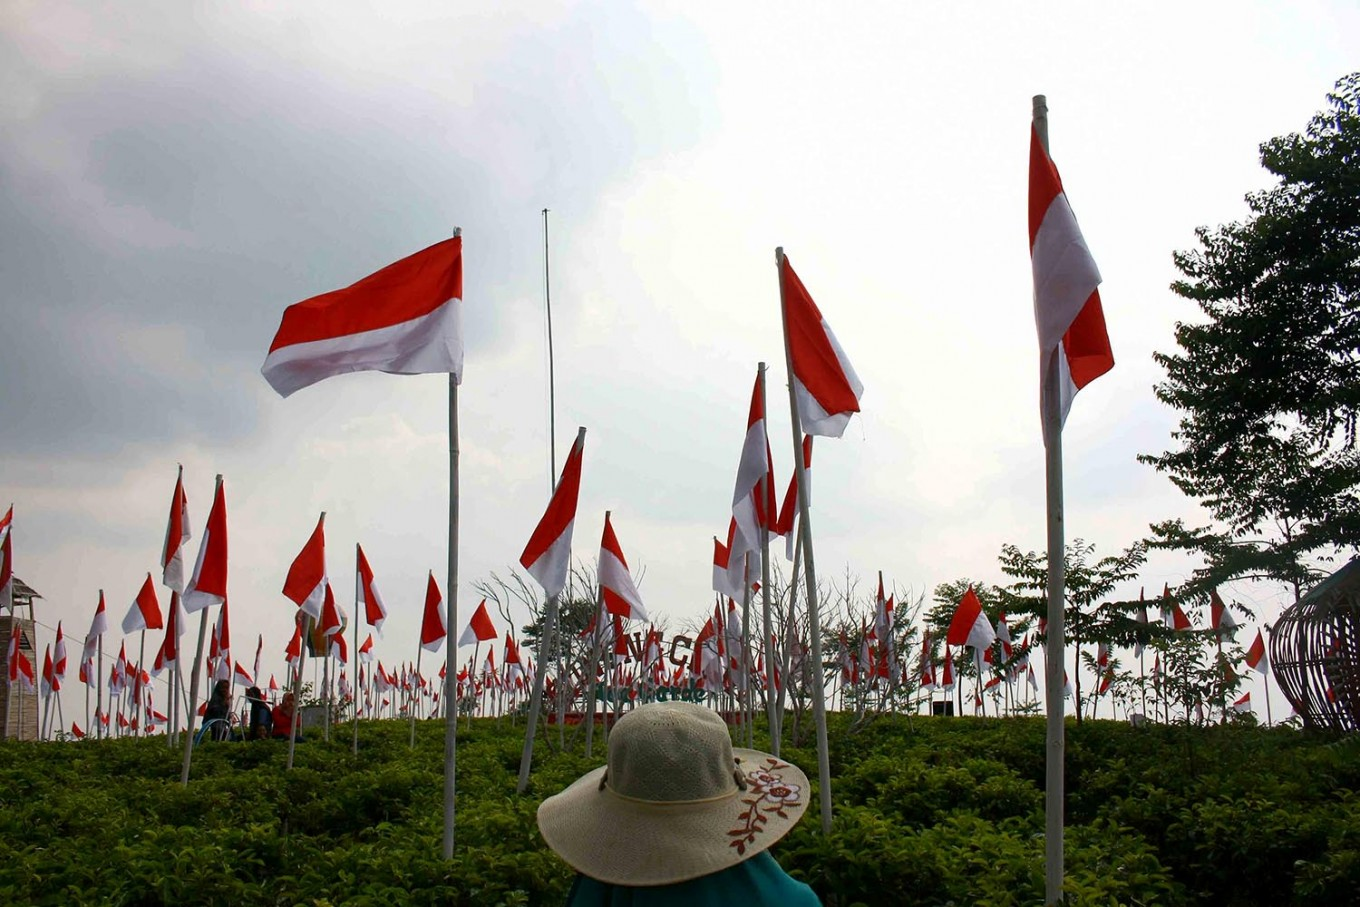 A total of 1,945 Indonesian flags are hoisted at the peak of Mount Cilik. JP/Maksum Nur Fauzan